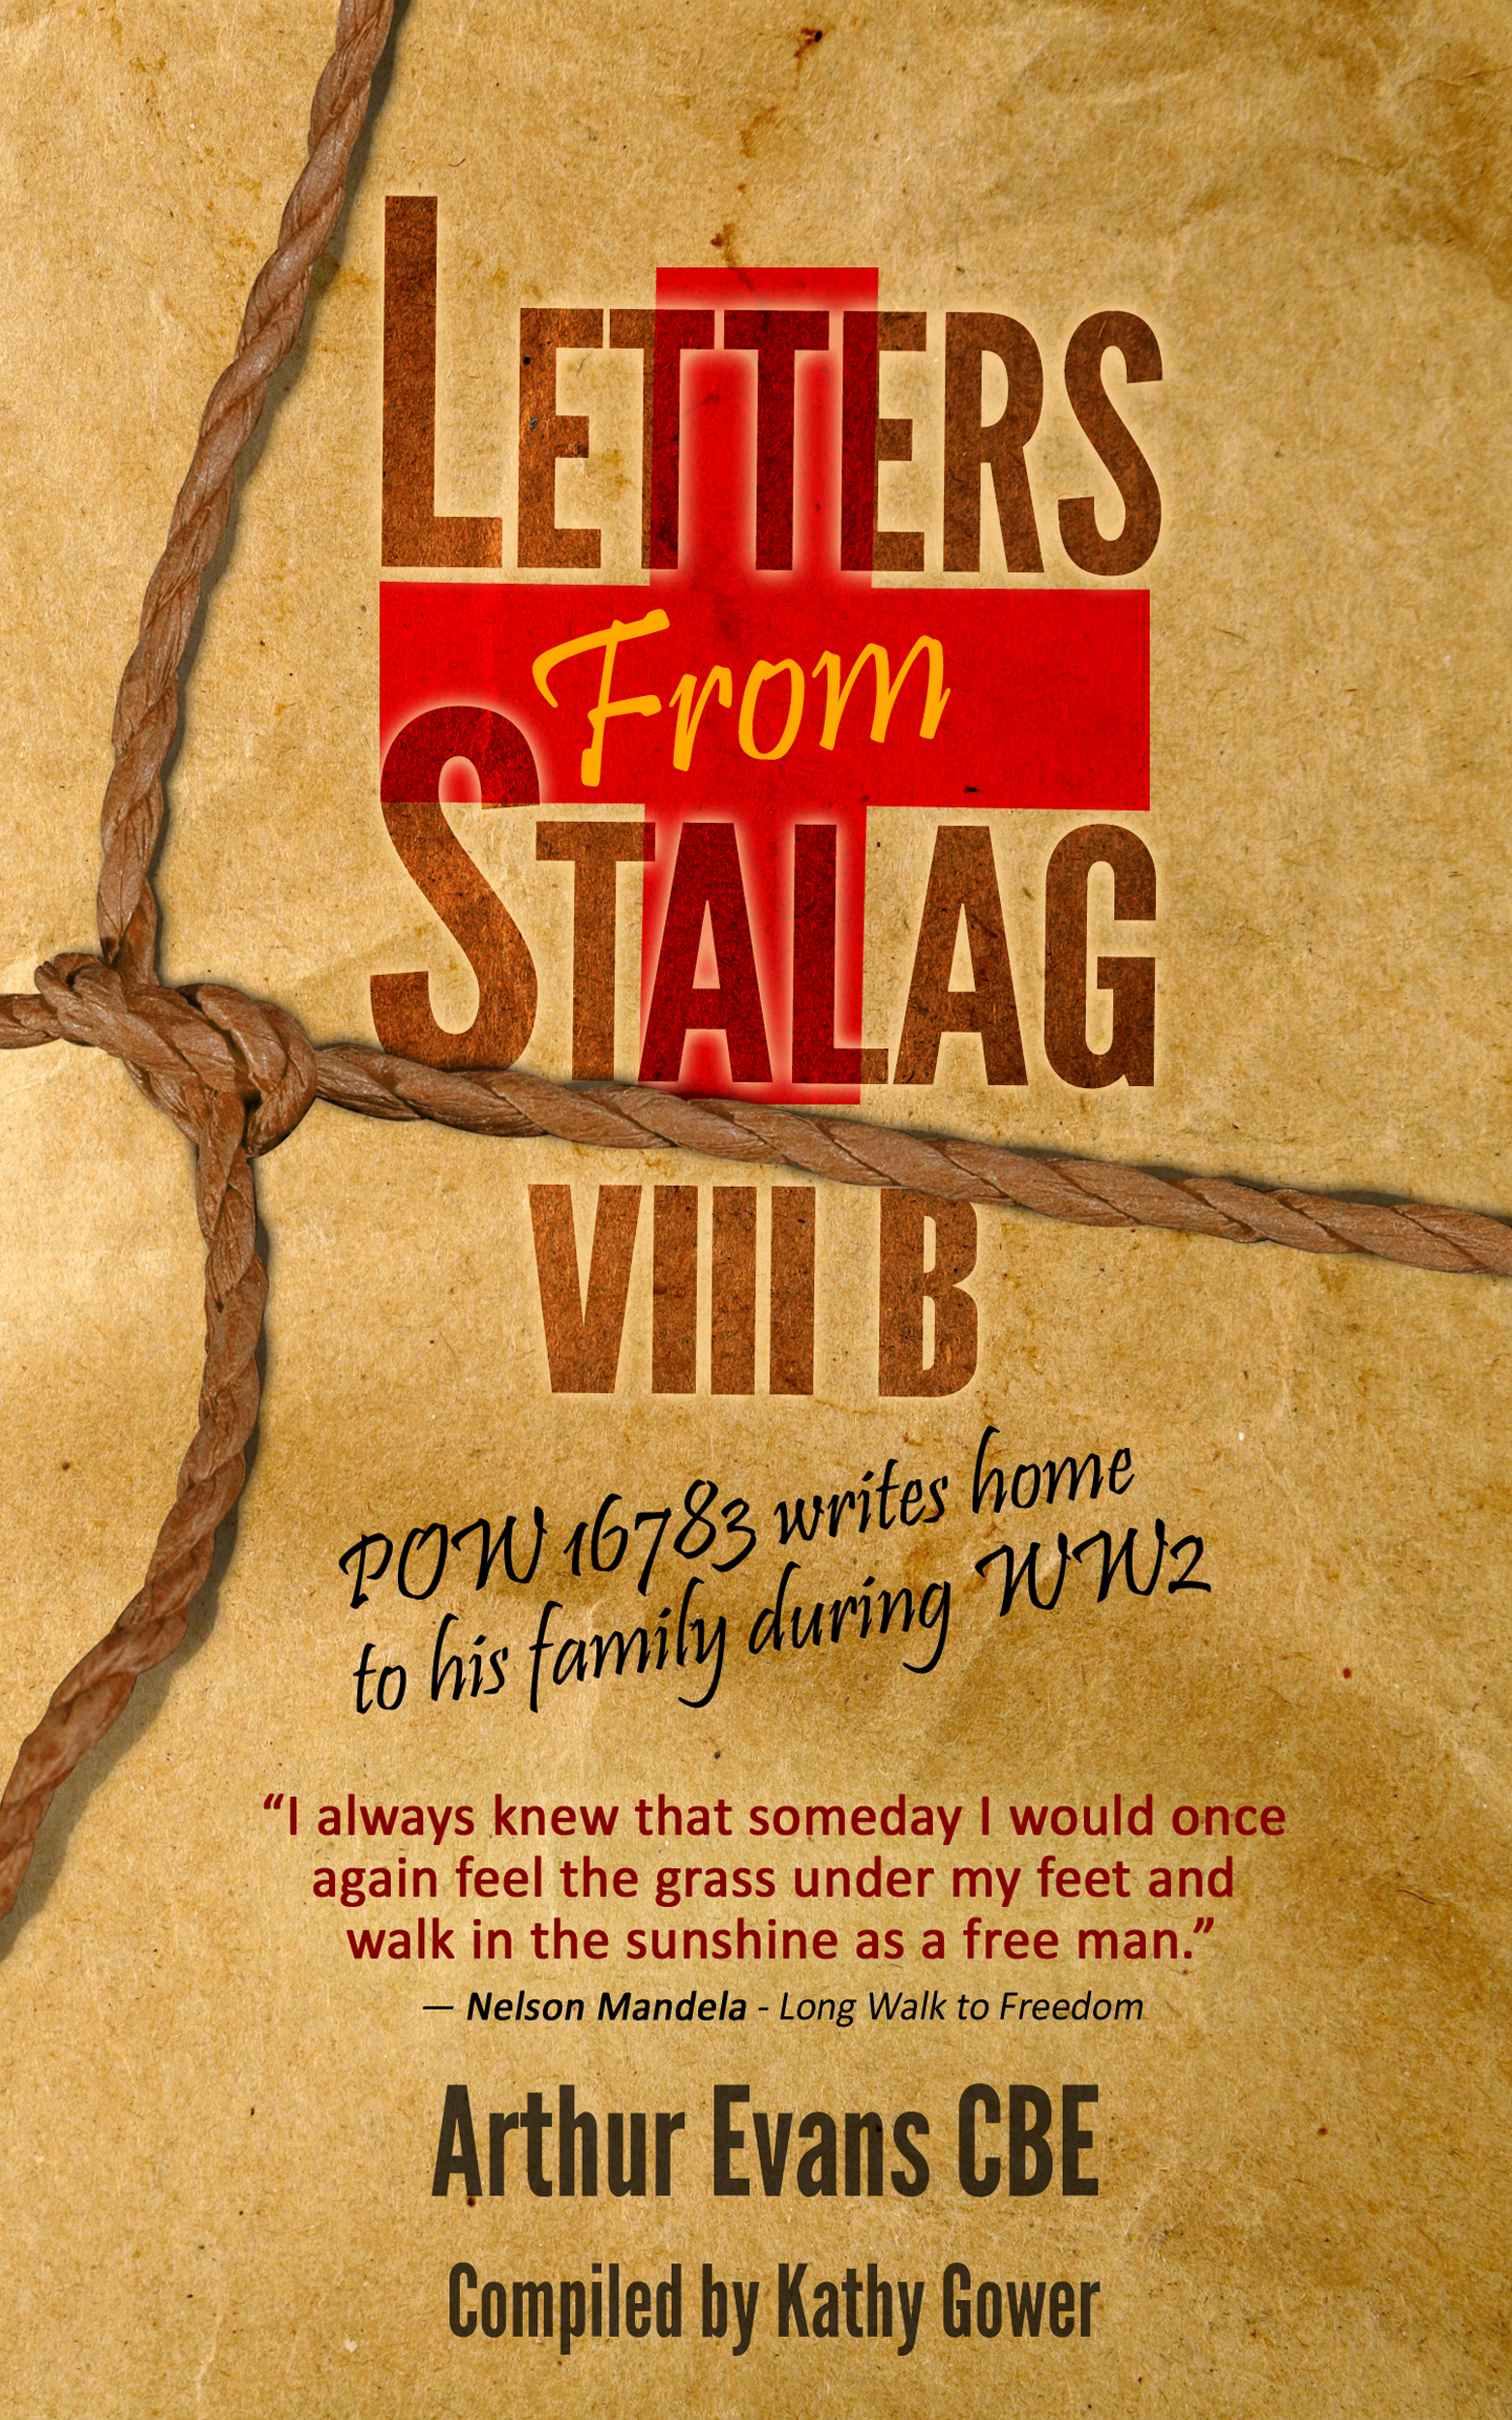 Letters from Stalag VIIIB